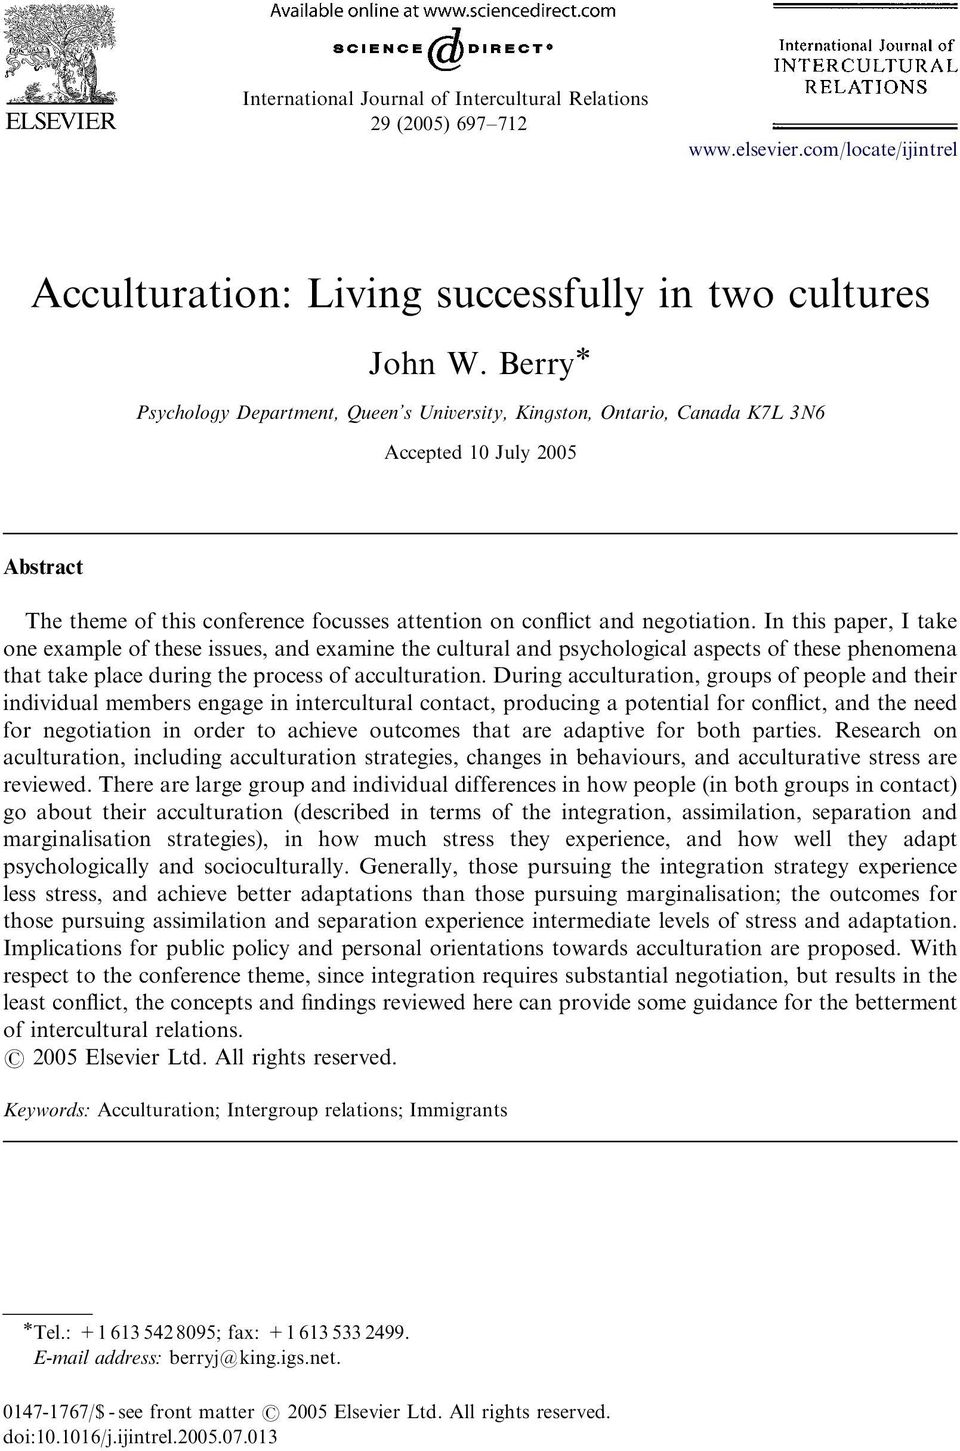 In this paper, I take one example of these issues, and examine the cultural and psychological aspects of these phenomena that take place during the process of acculturation.